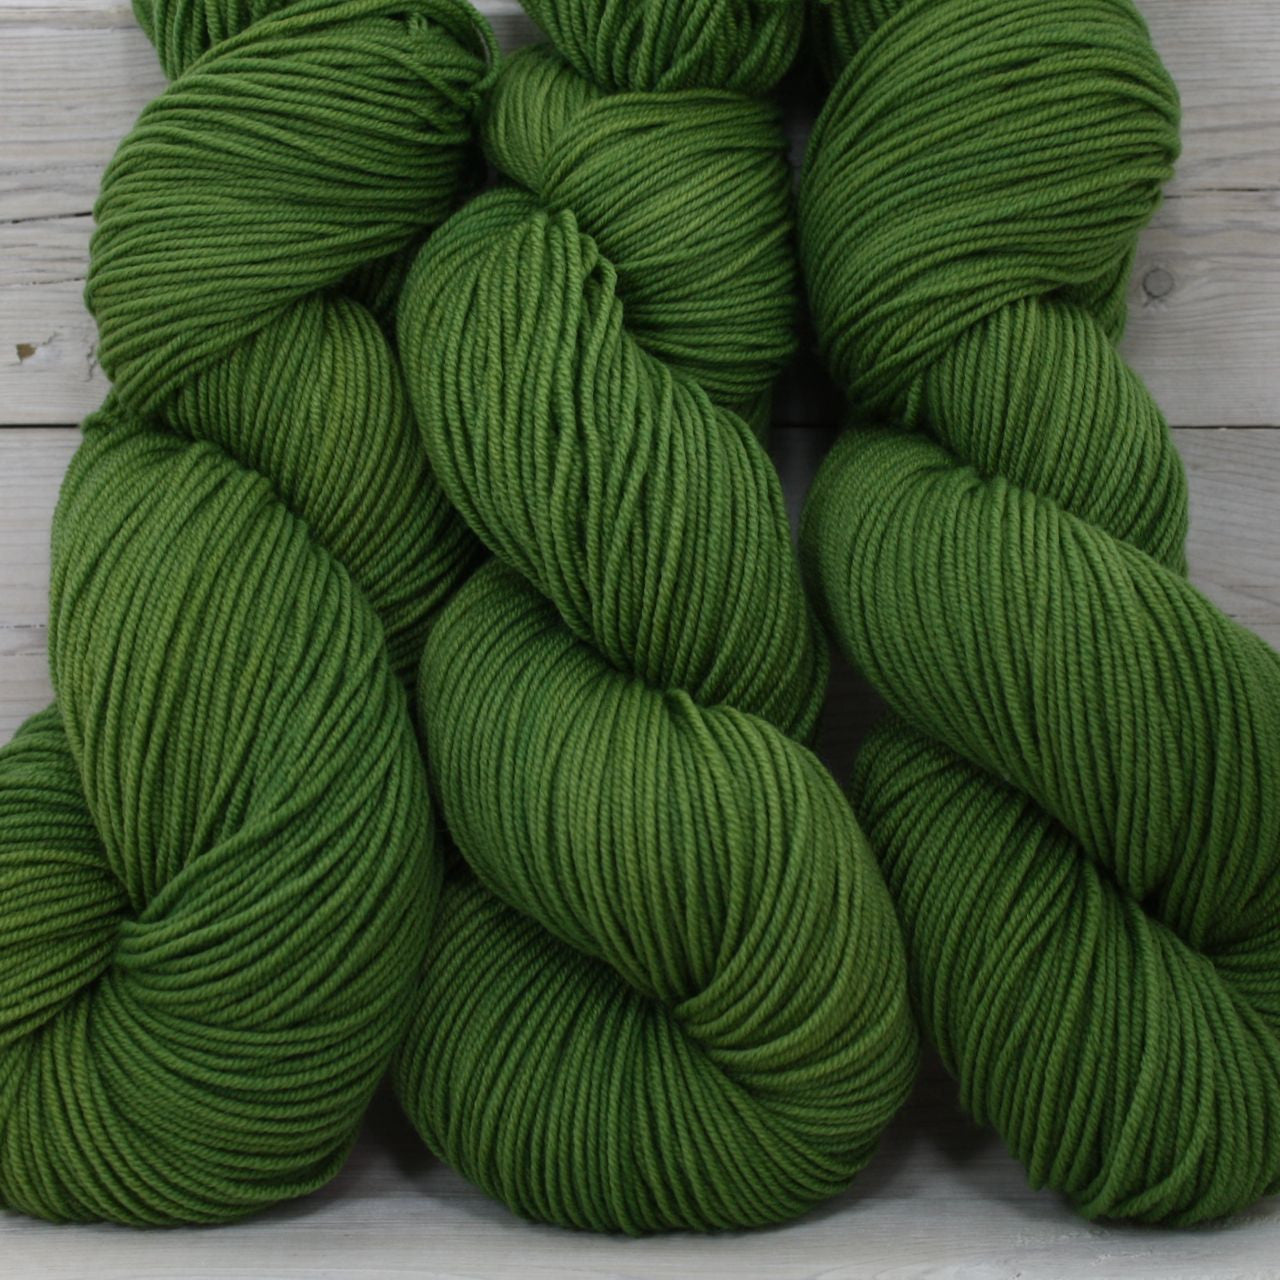 Aspen Sport Yarn | Colorway: Moss | Overstock